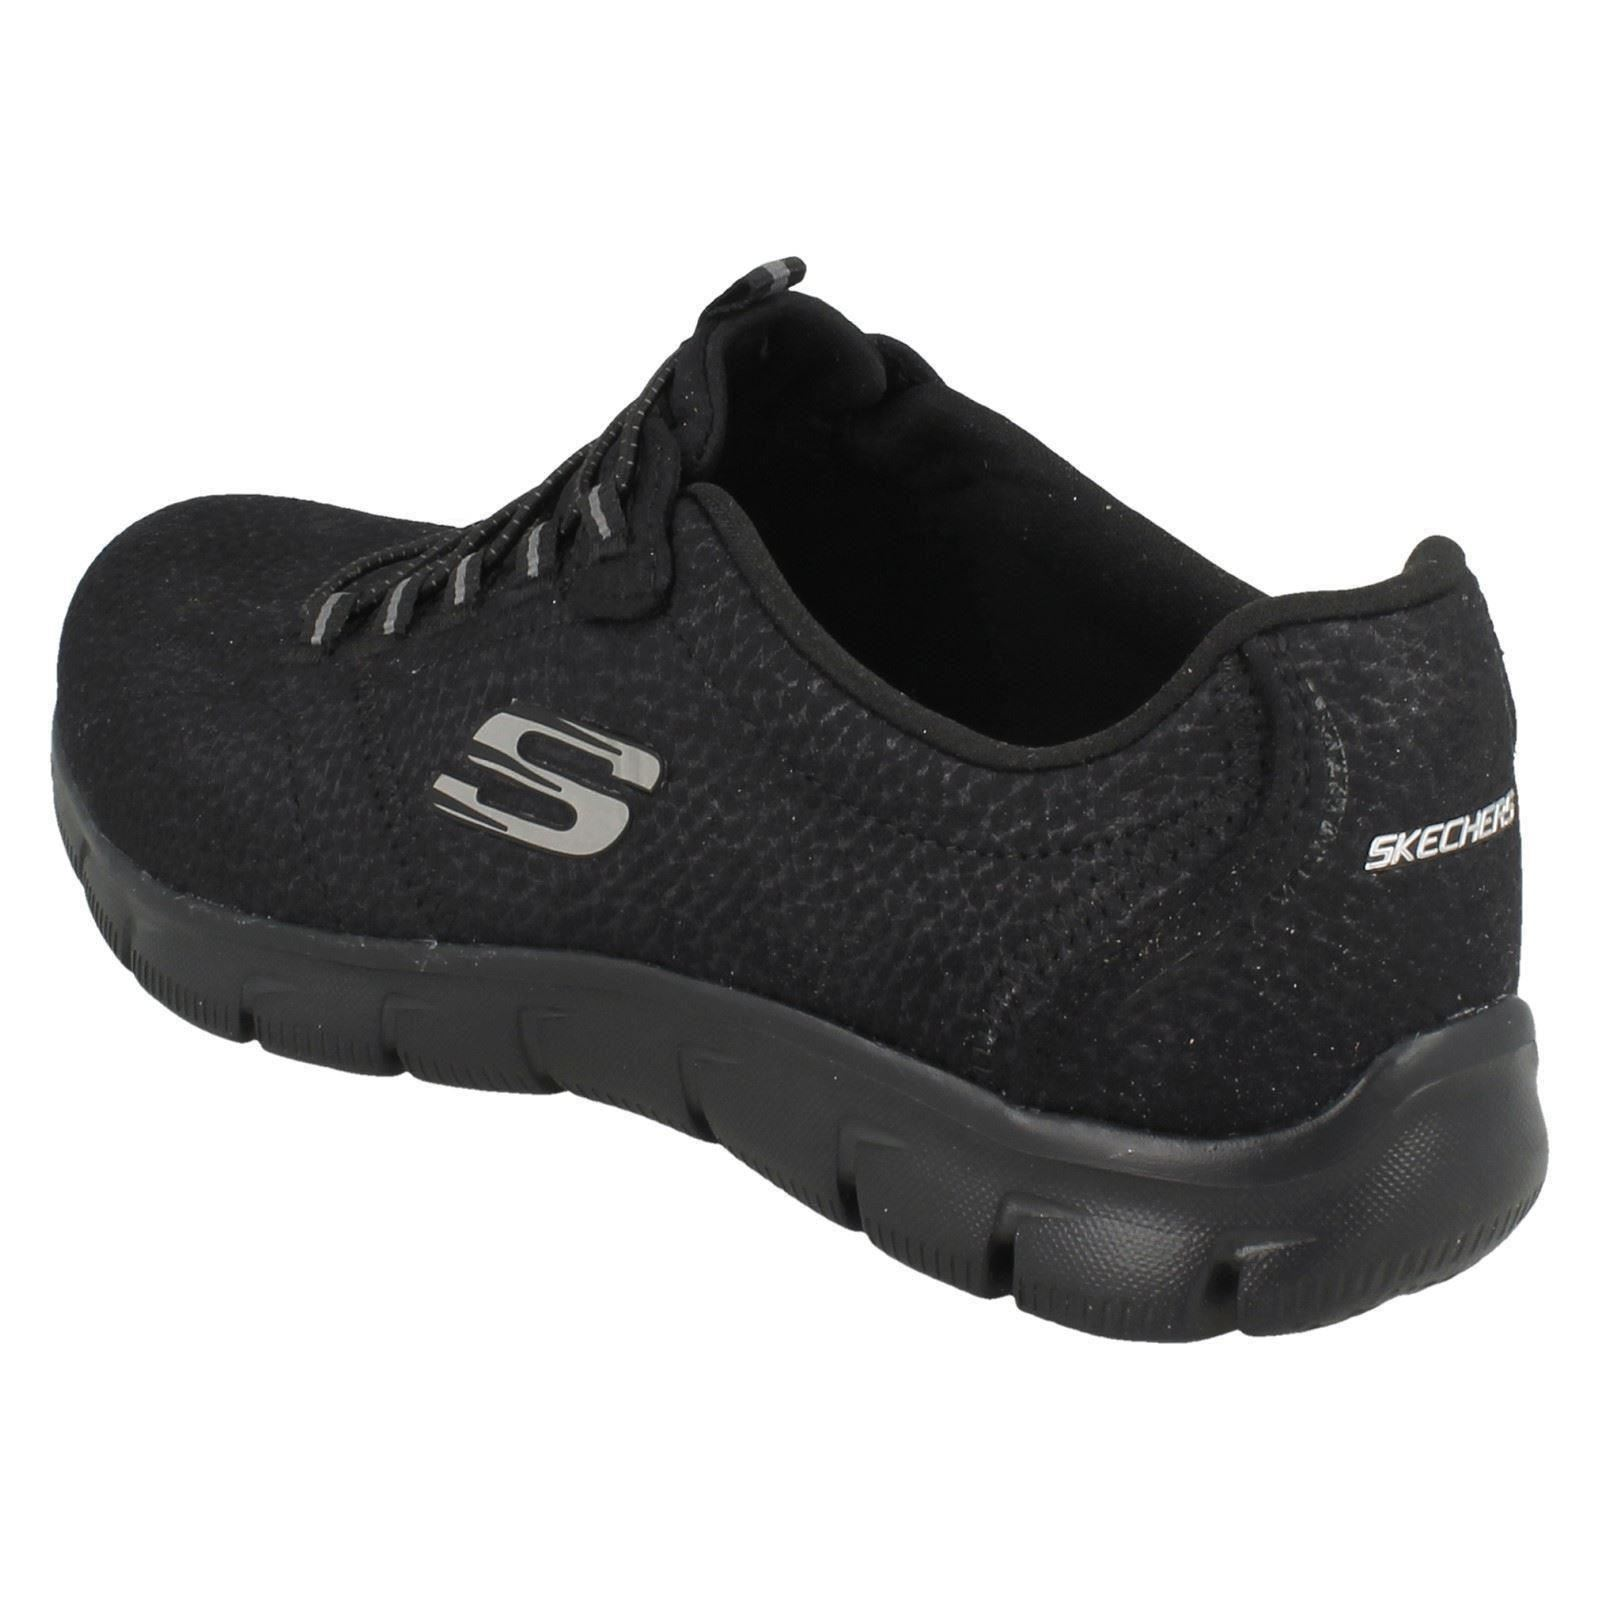 Baskets 12407 Skechers Take Style Femmes Décontracté Charge q7YpY05W